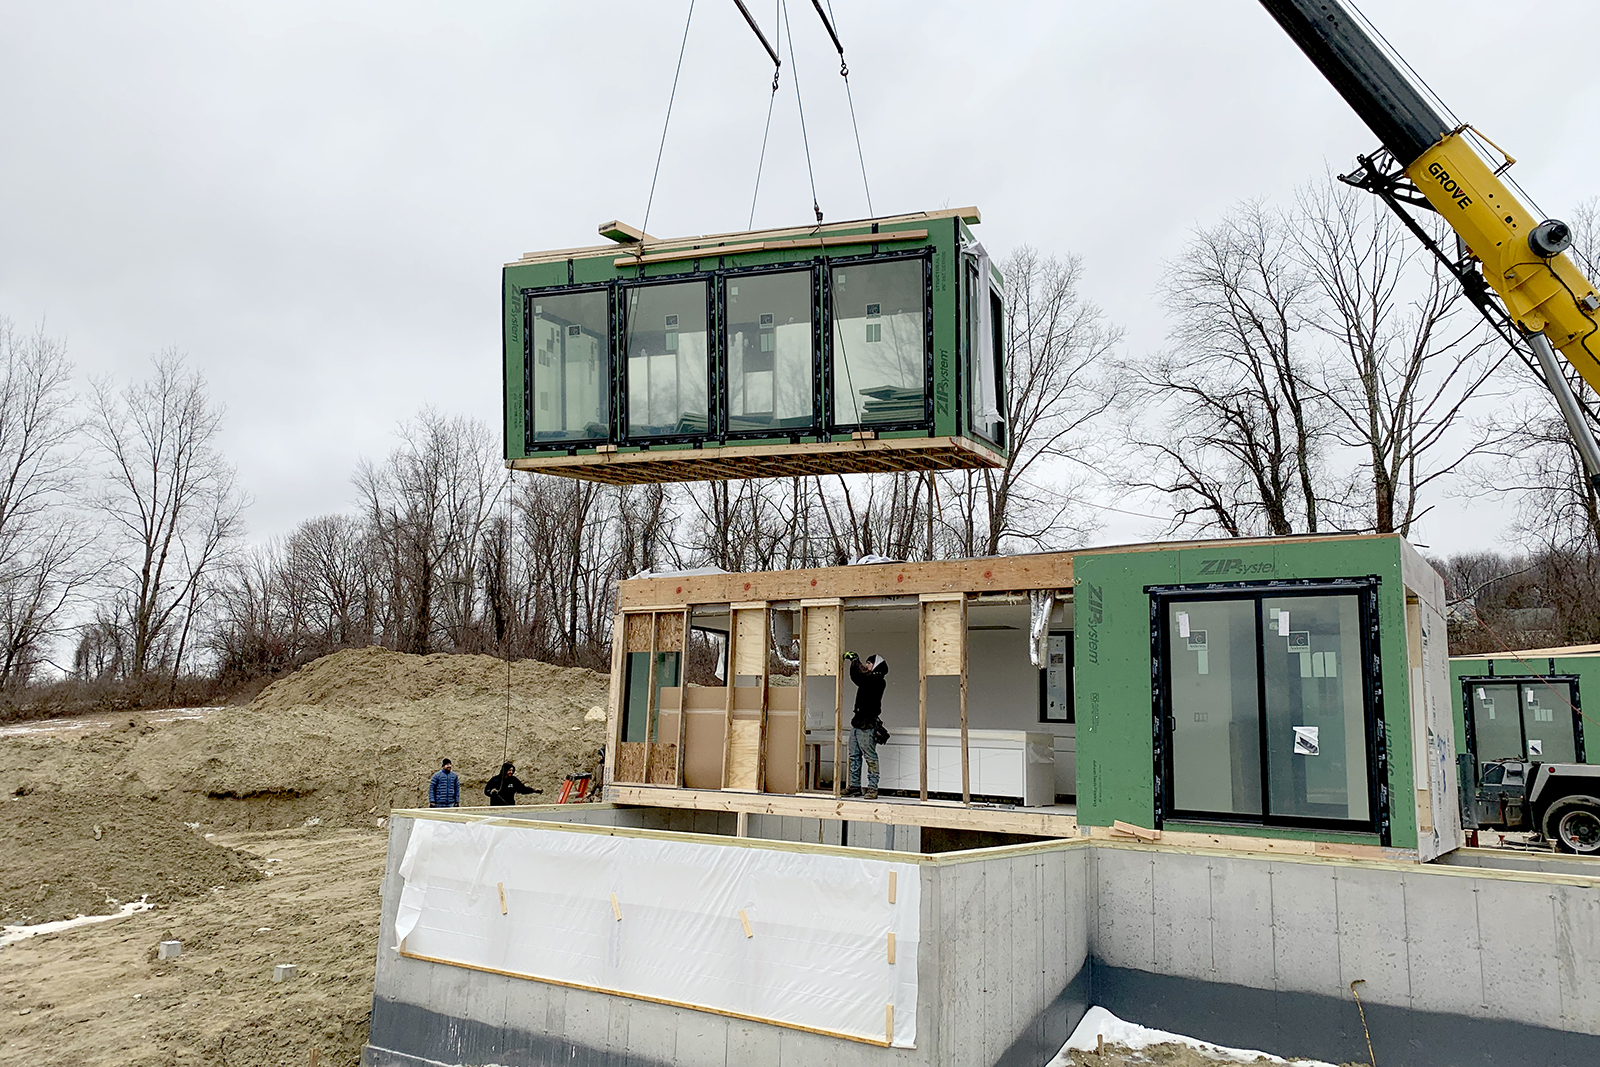 re4a-resolution-4-architecture-prefab-house-sharon-ridge-residence-set-construction-update 01 IMG_4865.JPG